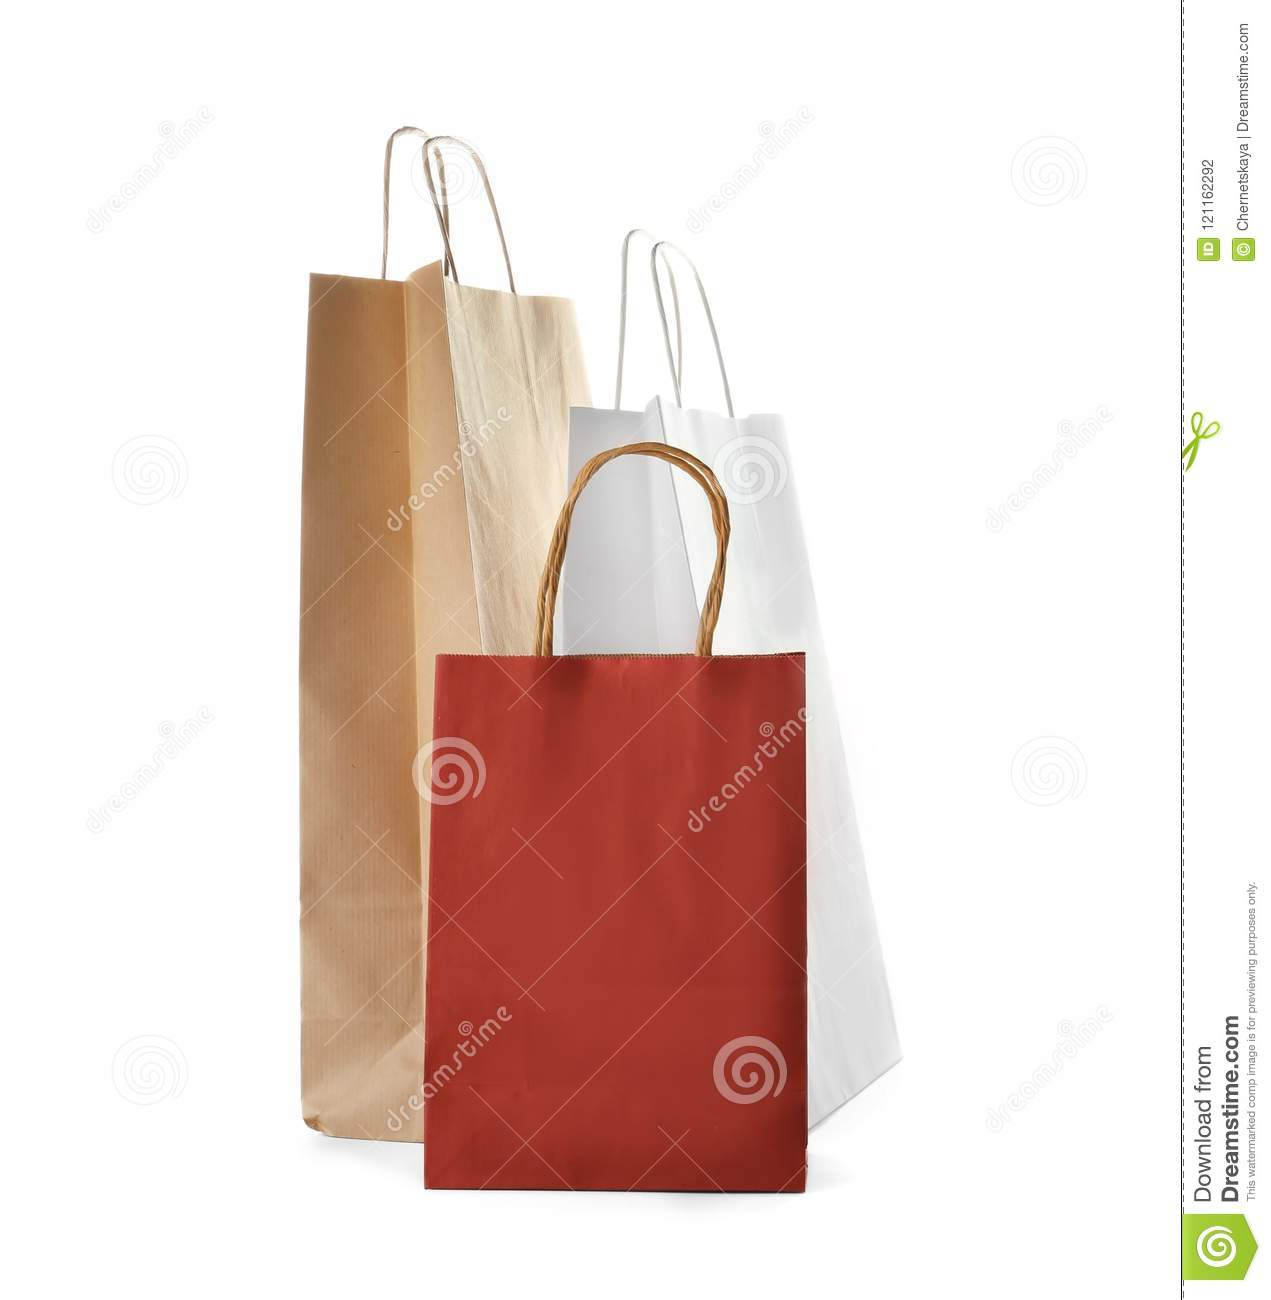 Mockup of paper shopping bags